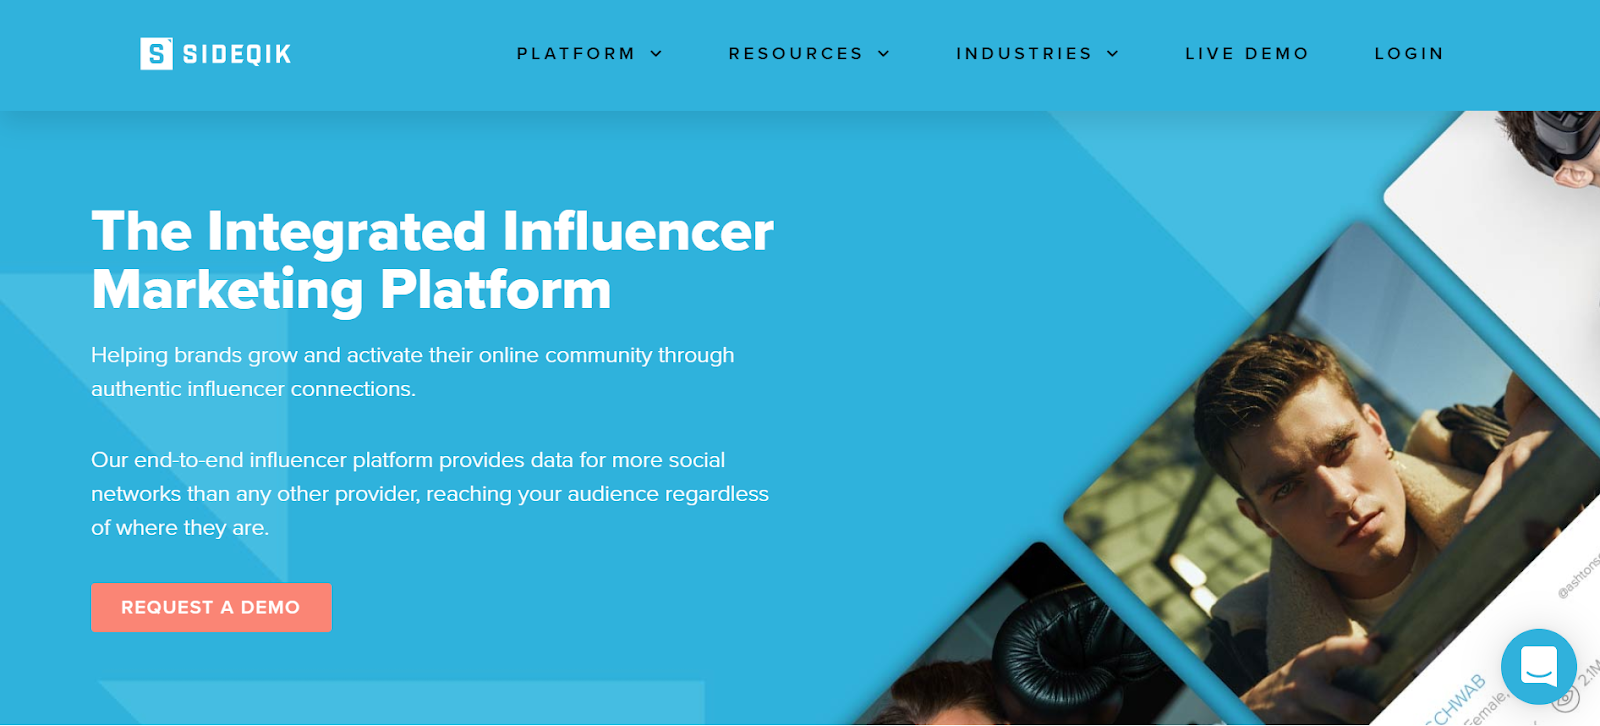 Plataforma de marketing de influencia Sideqik